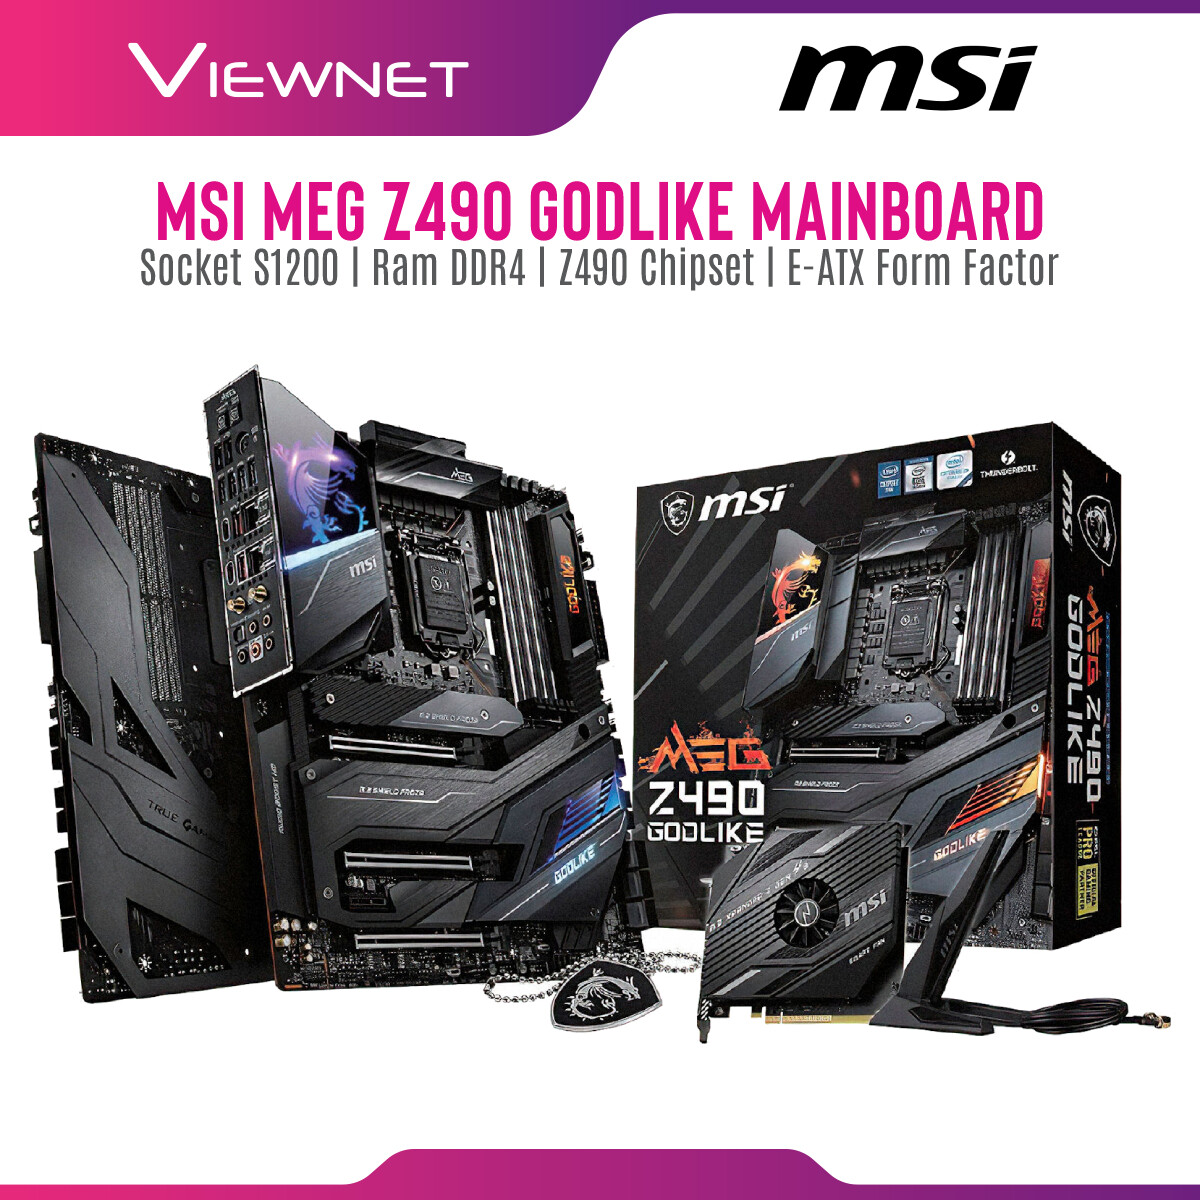 Msi MEG Z490 GODLIKE Mainboard, Supports 10th Gen Intel® Core™, 11th Gen Intel® Core™, Pentium® Gold and Celeron® processors for LGA 1200 socket, Supports DDR4 Memory, up to 5000(OC) MHz